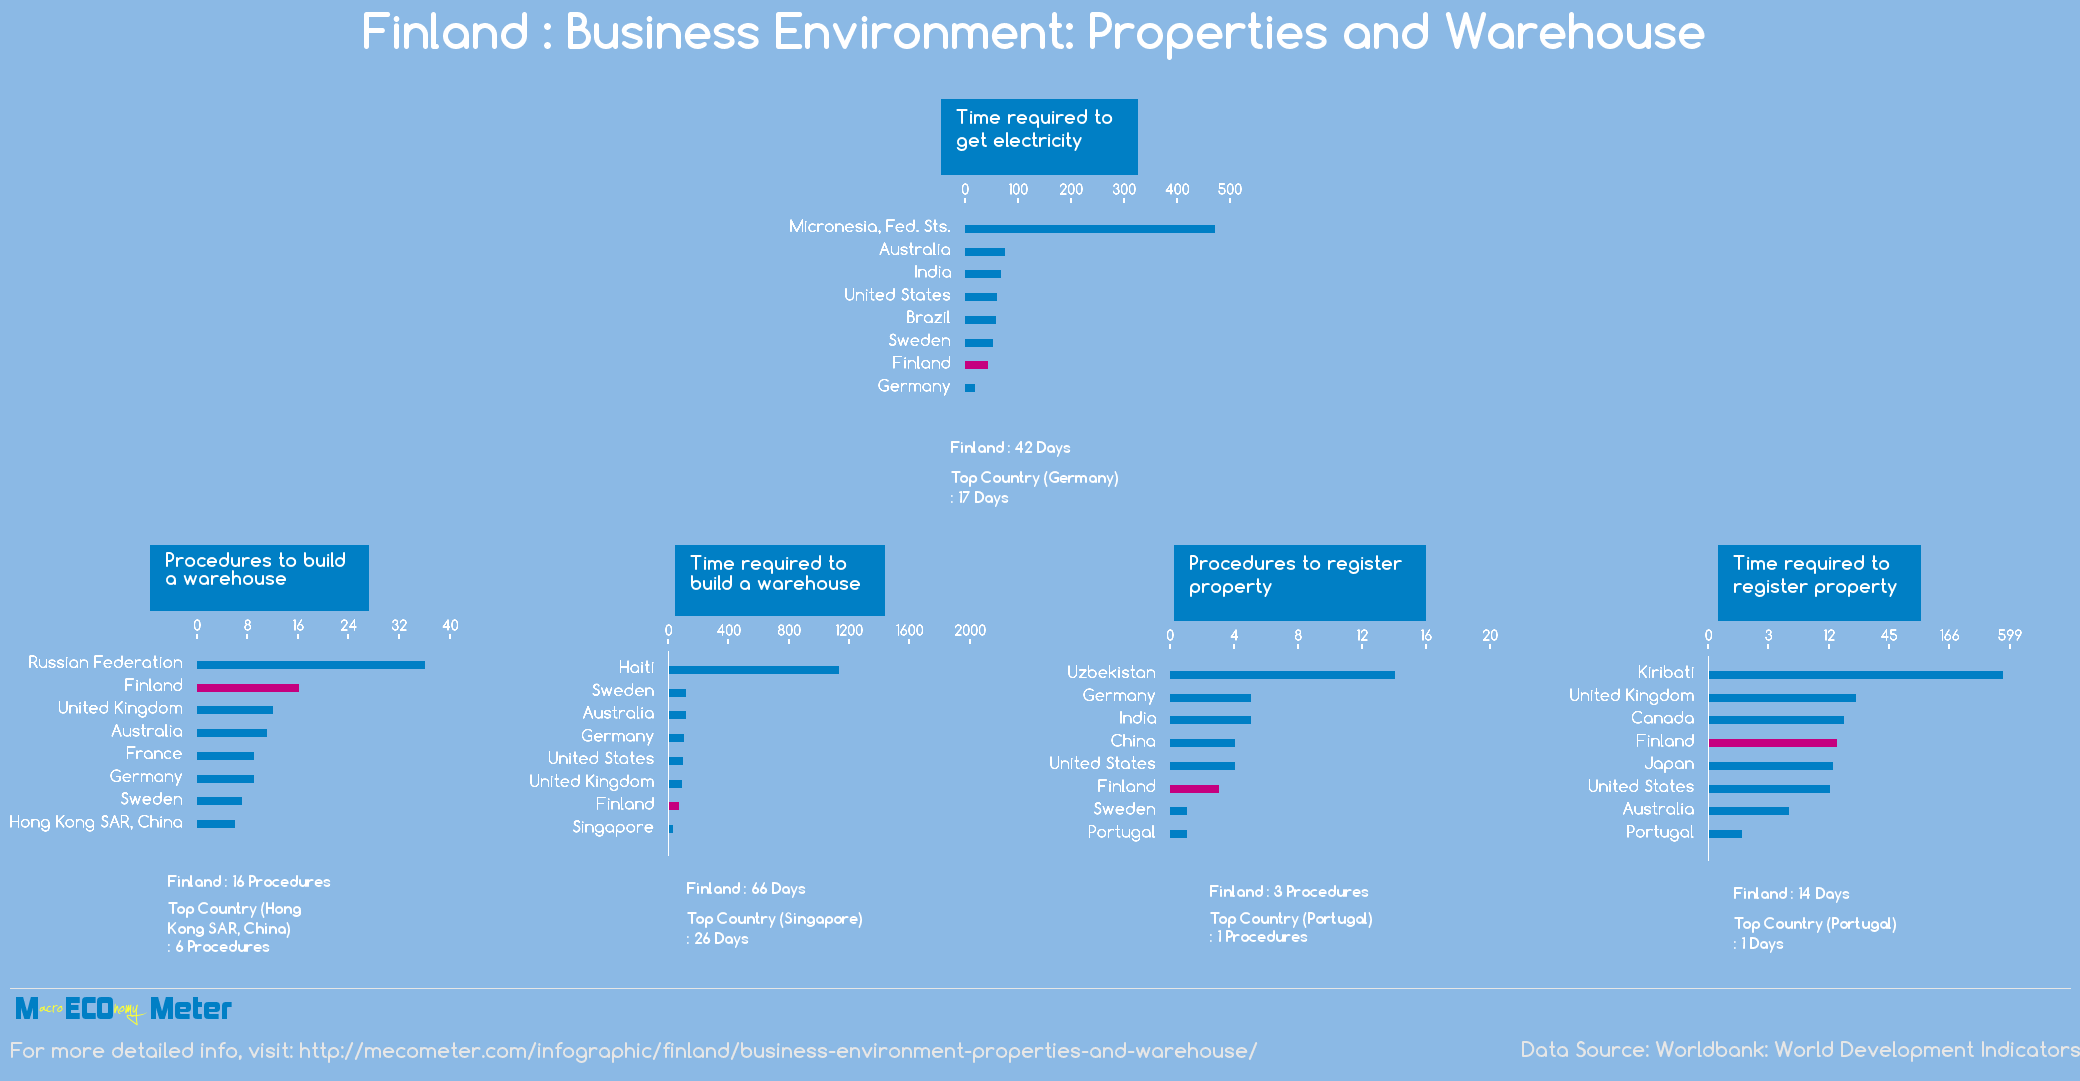 Finland : Business Environment: Properties and Warehouse